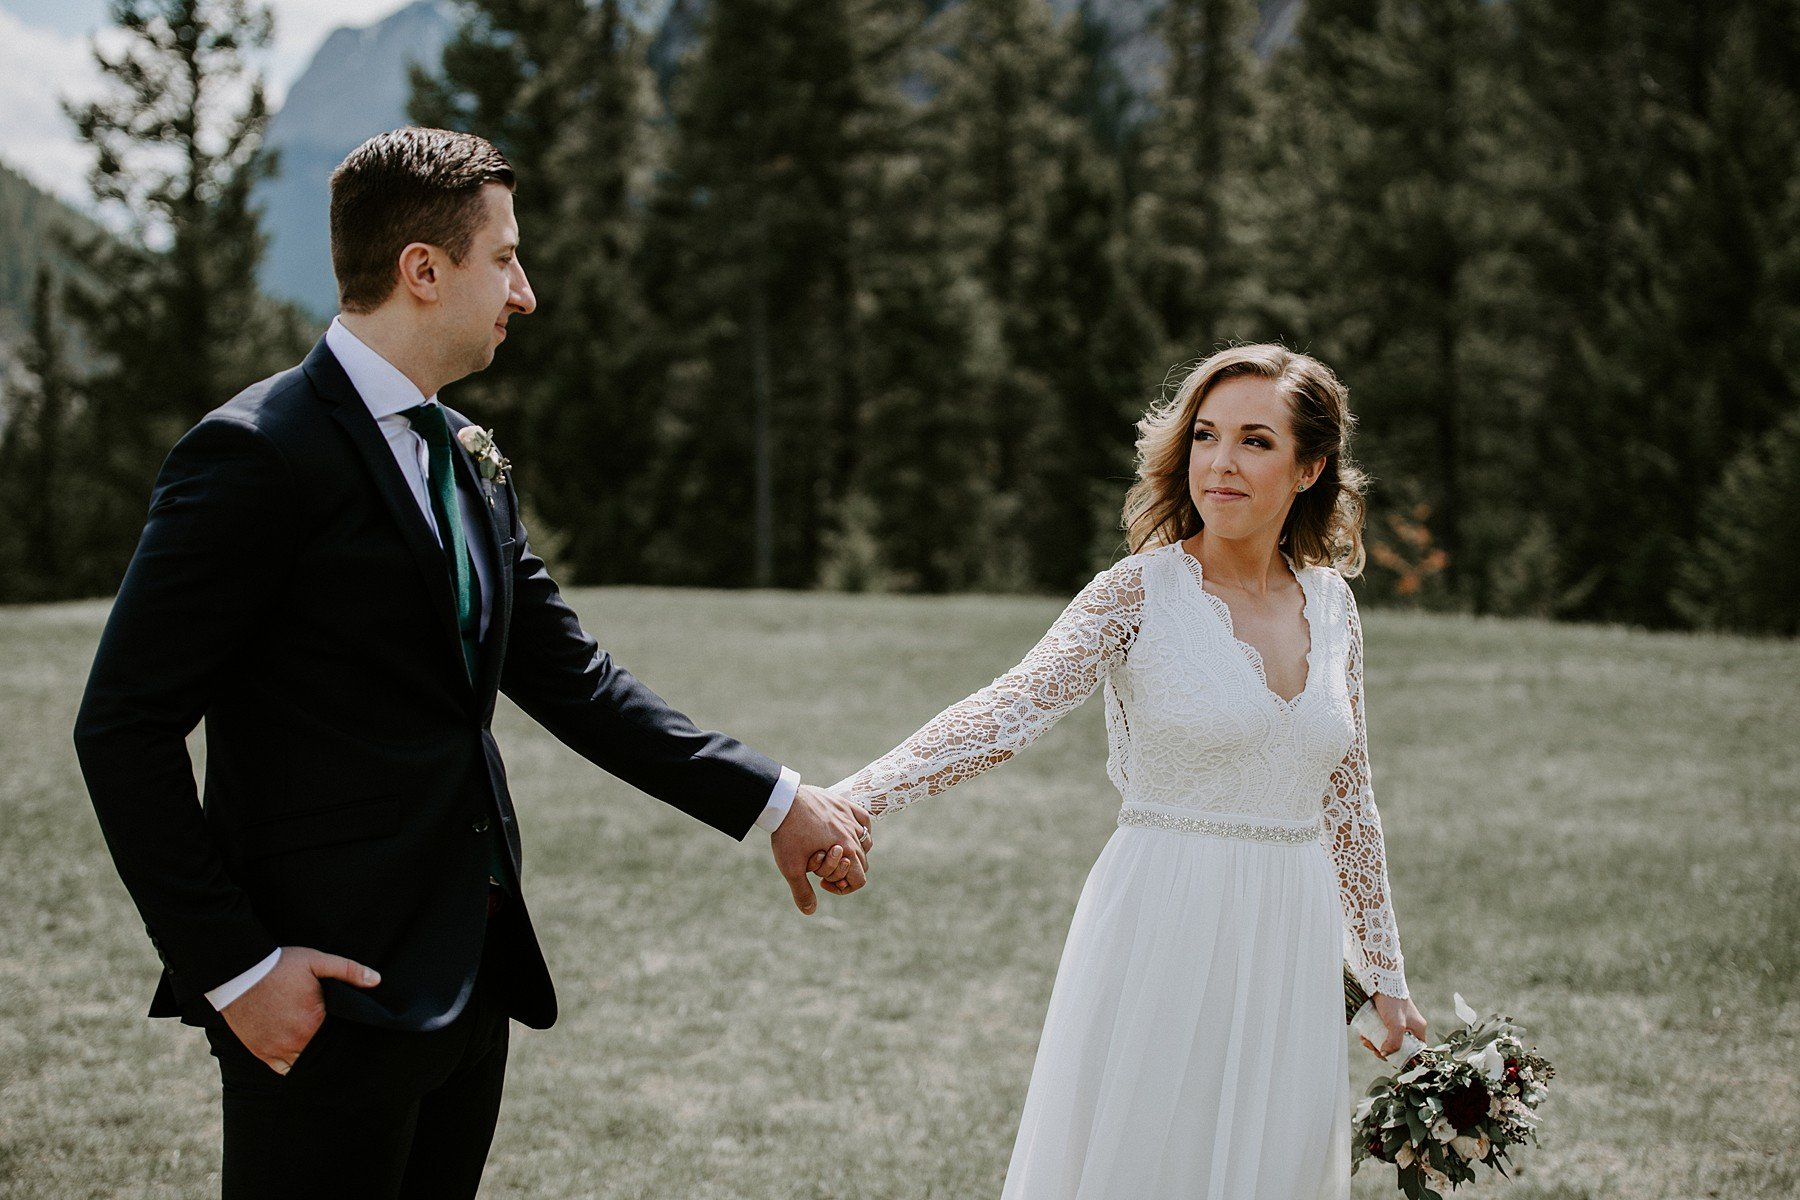 Teller of Tales Photography - Elopement - Tunnel Mountain Banff-67.jpg